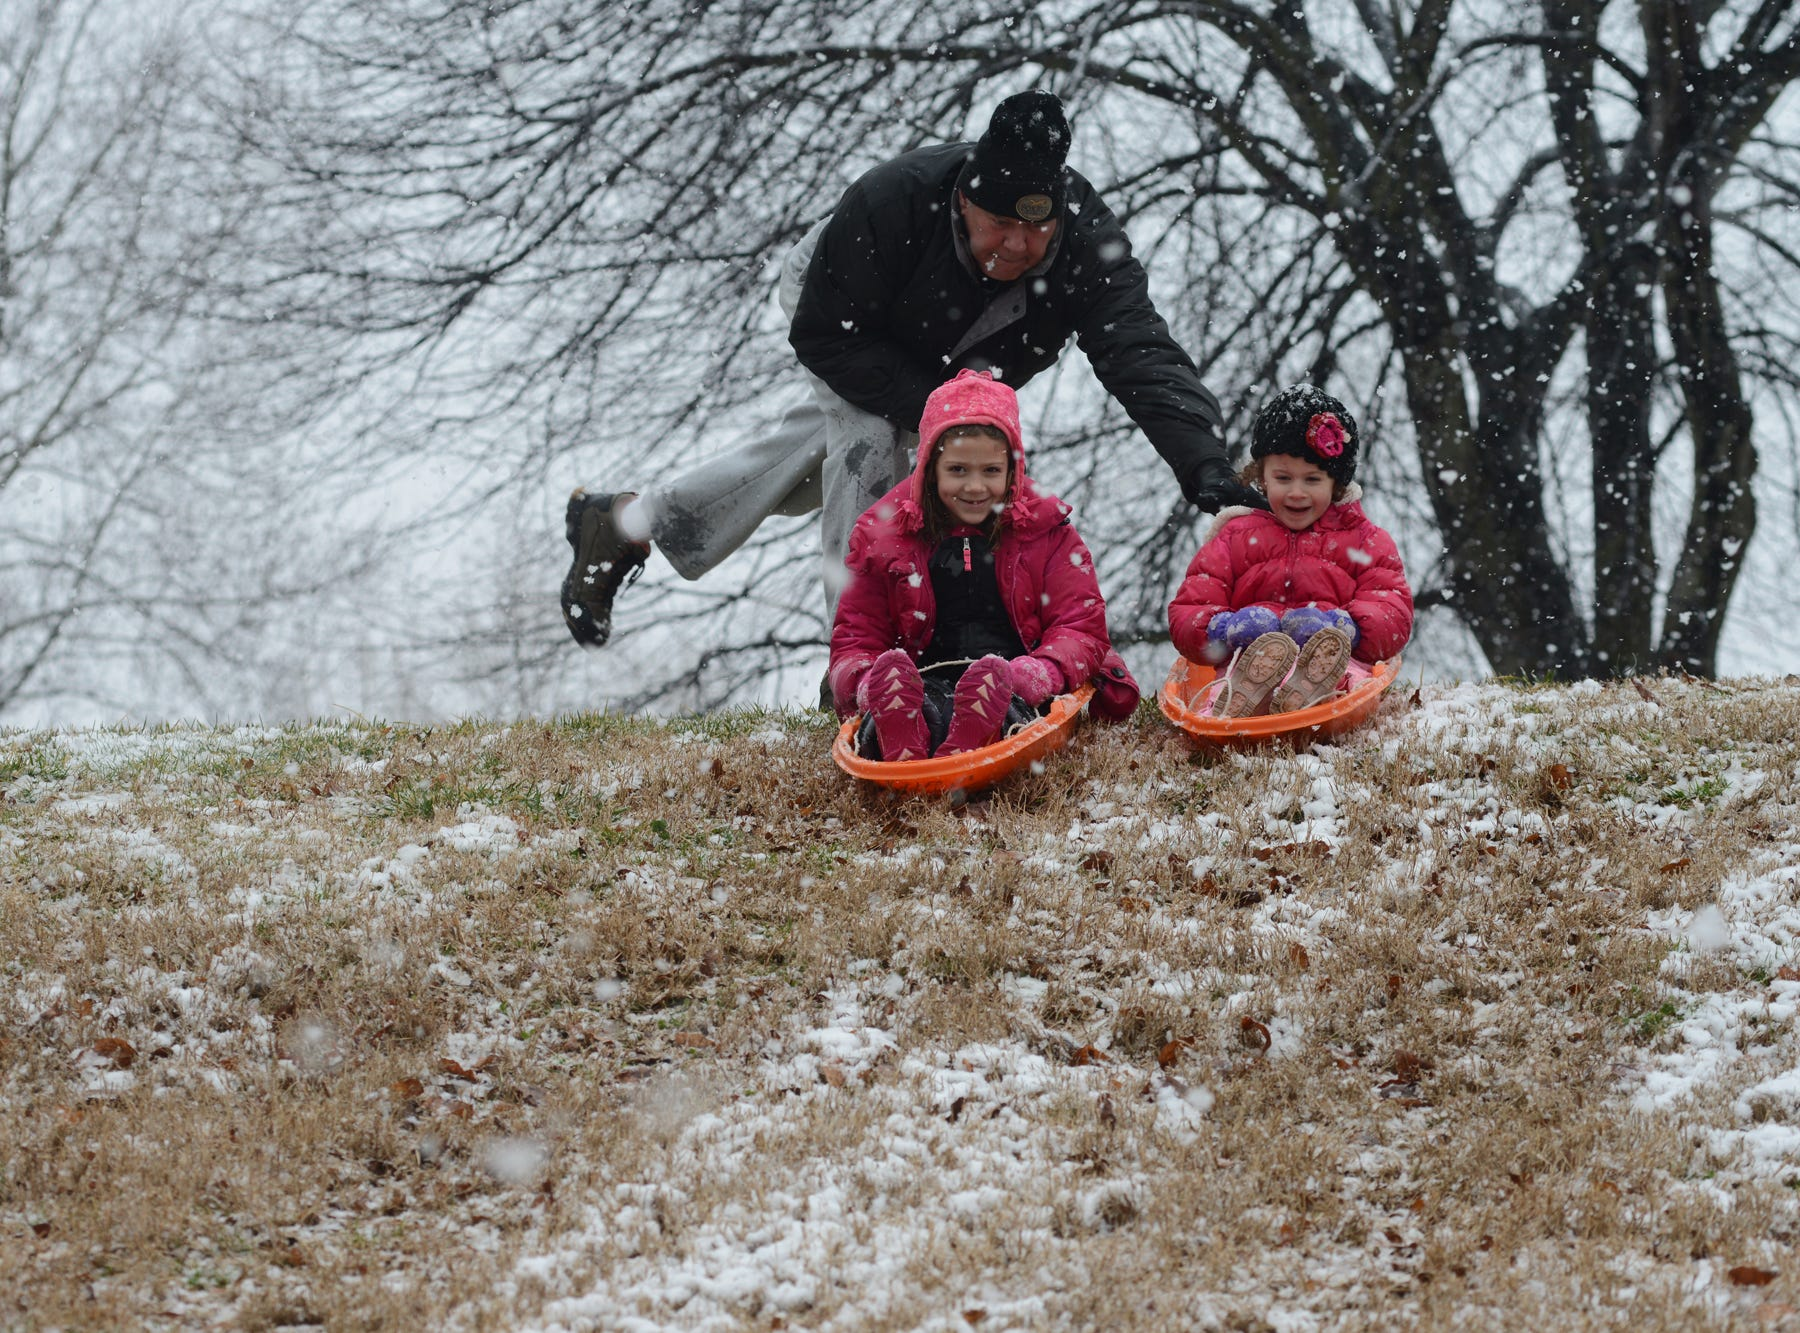 Gene Brees plays in the snow with his grandchildren McKinley Griffeth, left, and Lucy Griffeth, right, on the campus of Greenville Technical College on Tuesday, February 11, 2014.